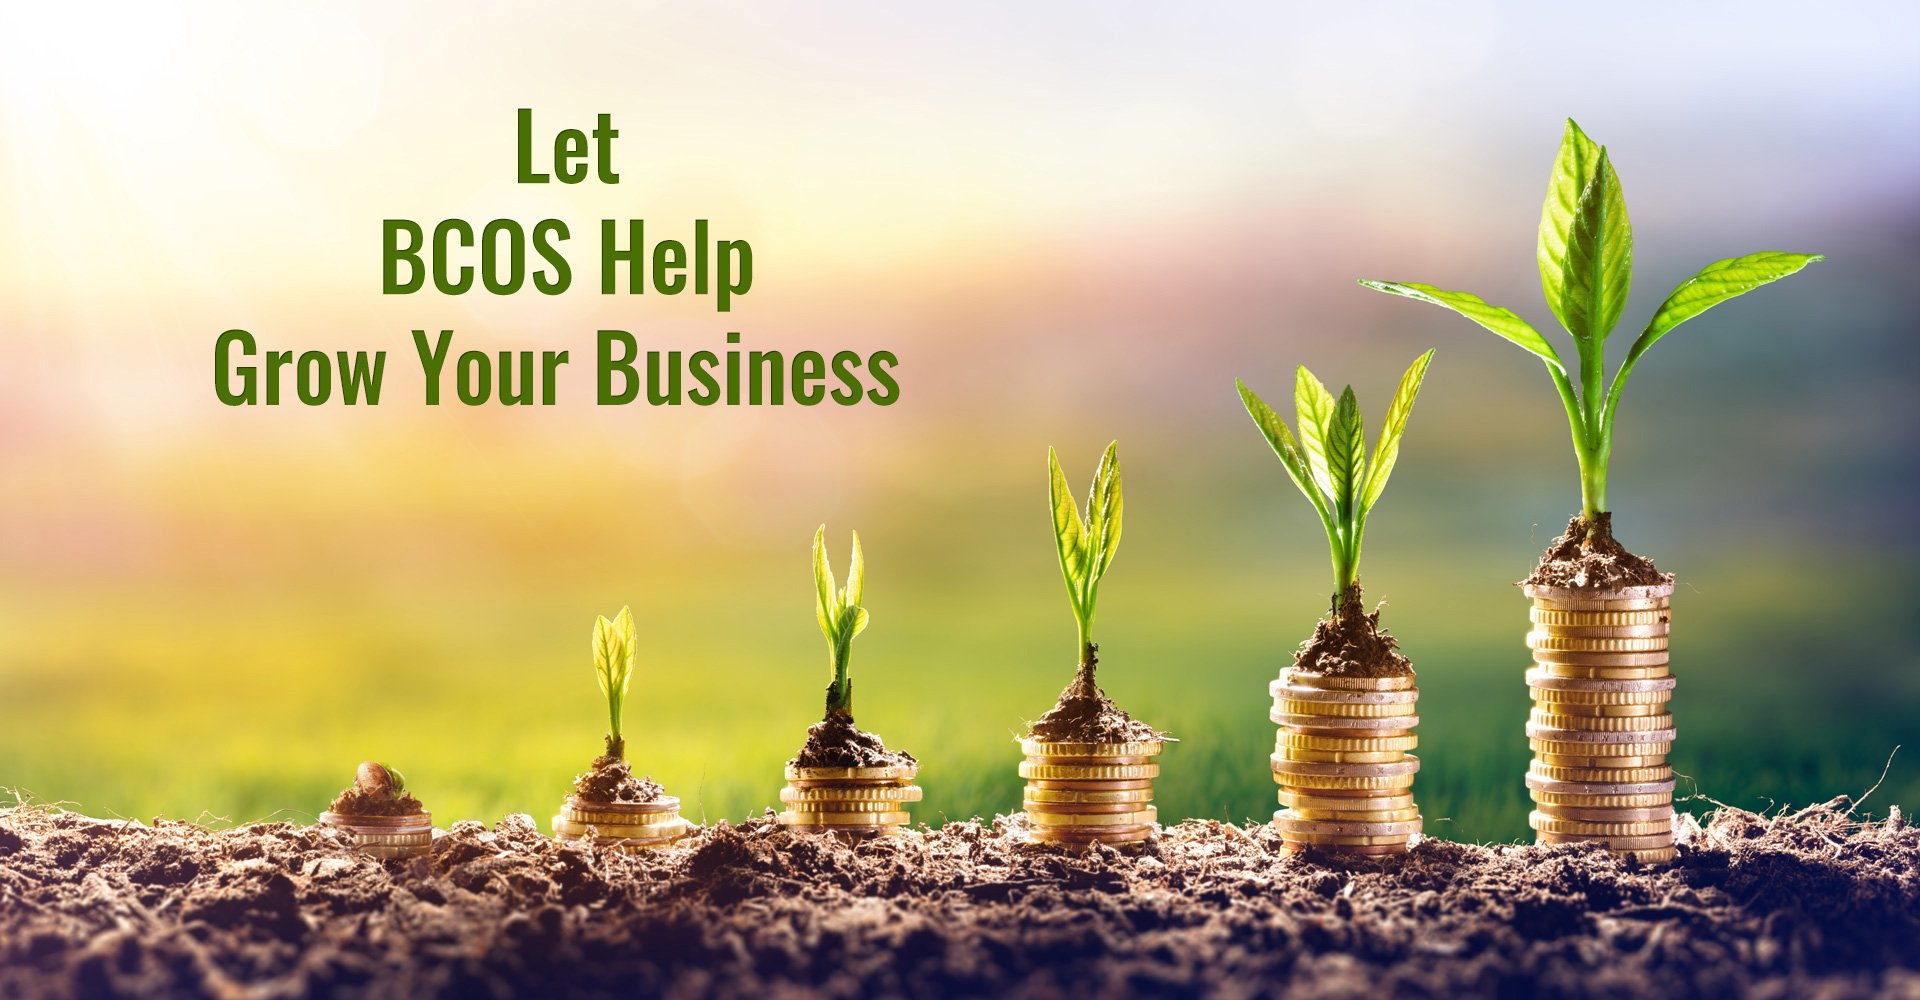 3 Ways We Can Help Your Small Business Grow  | BCOS Office Technologies (7)